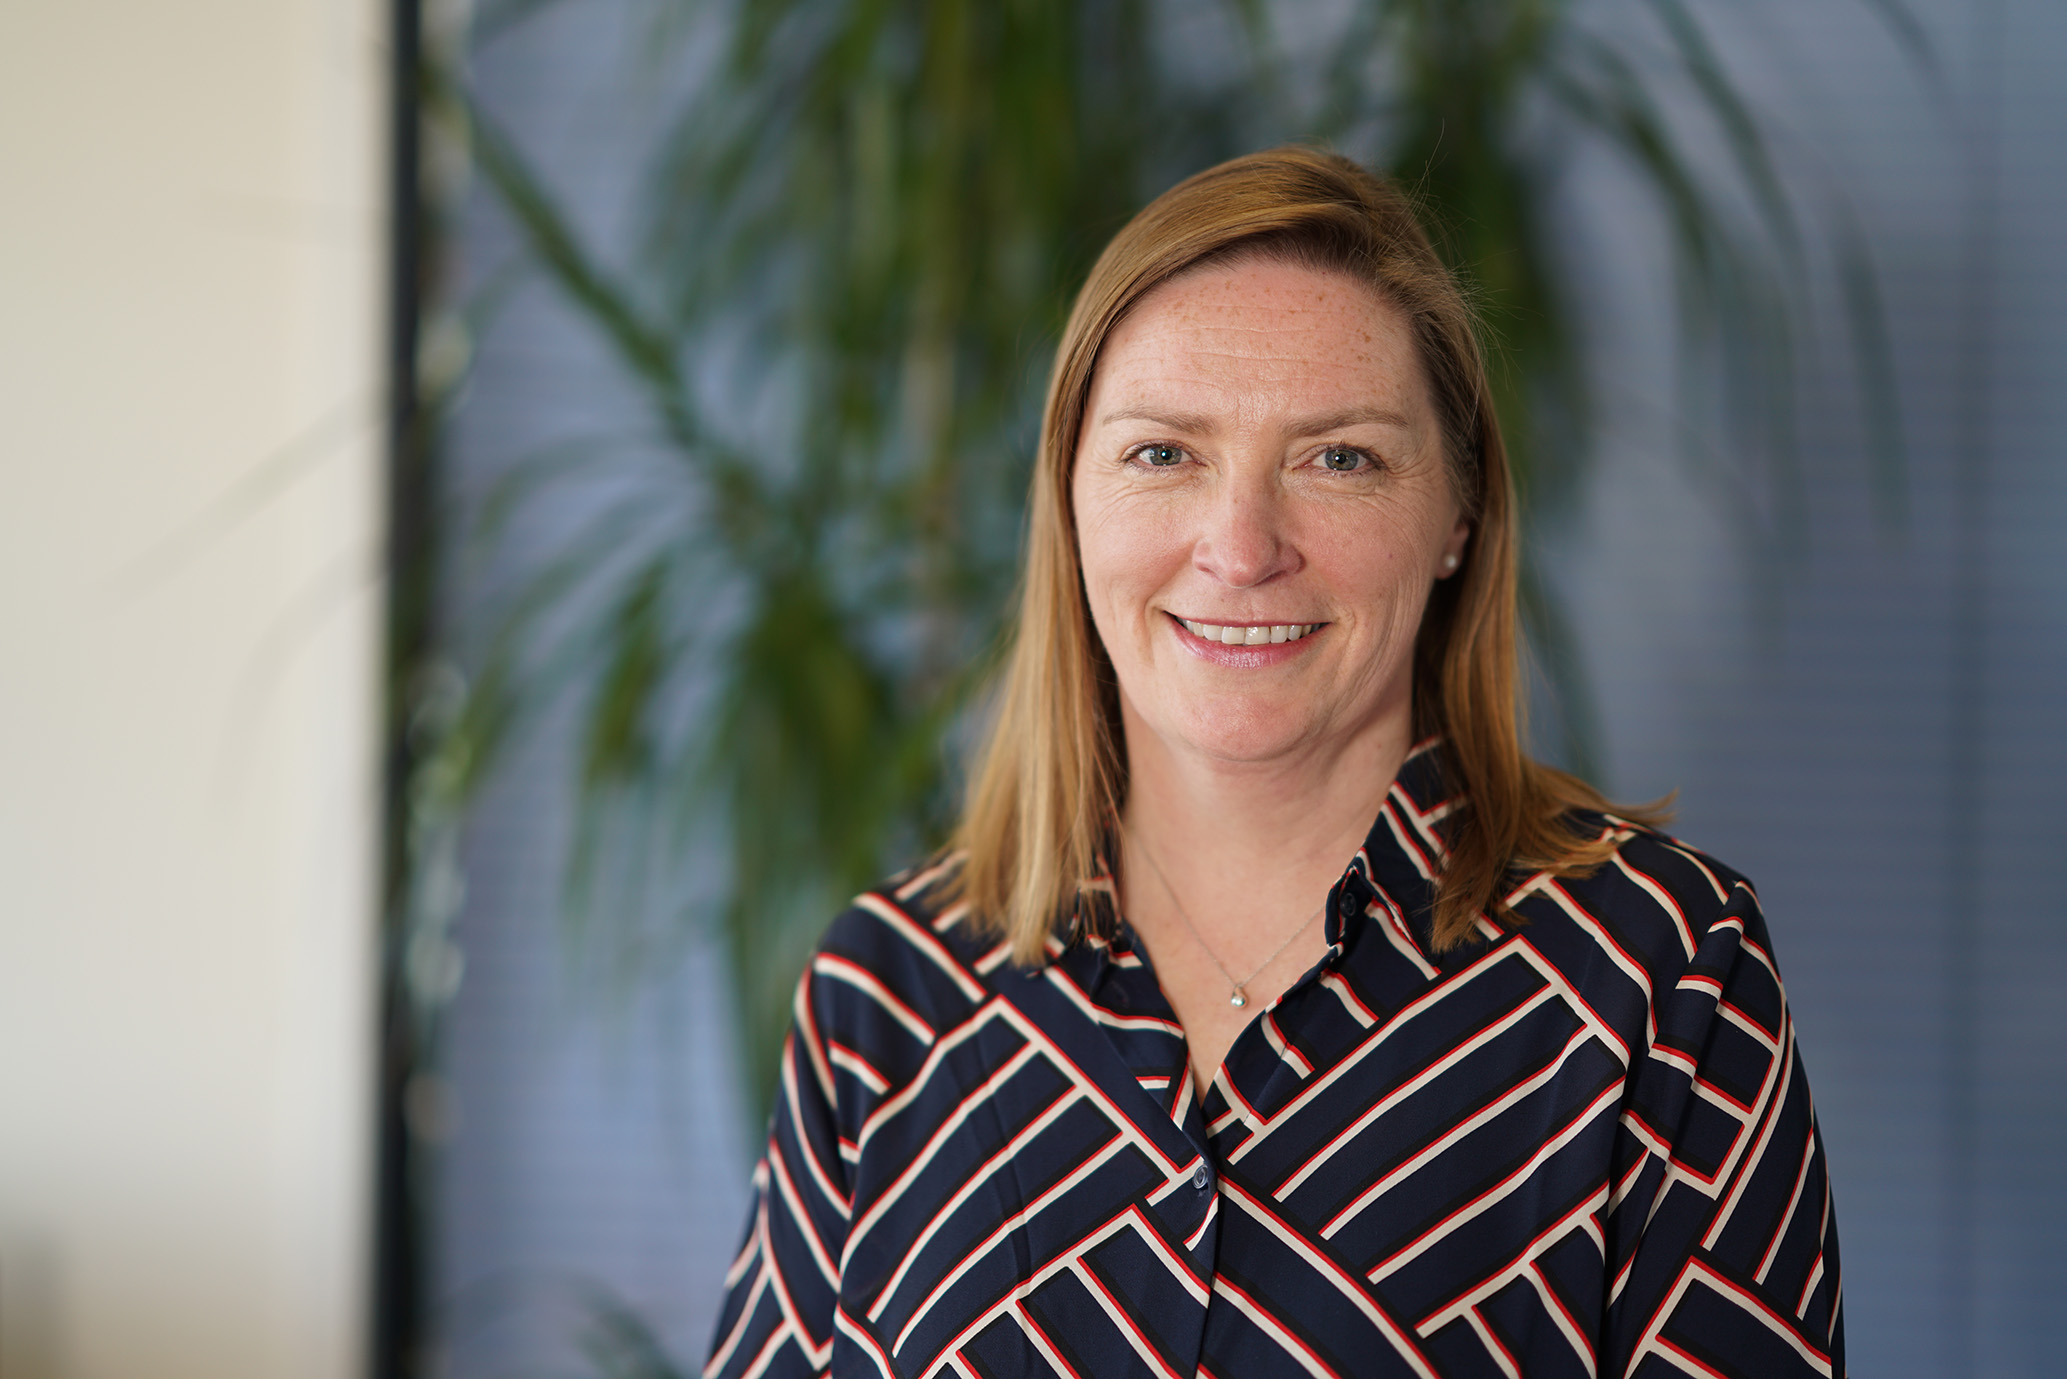 WFS appoints Jennifer Smith as UK commercial director